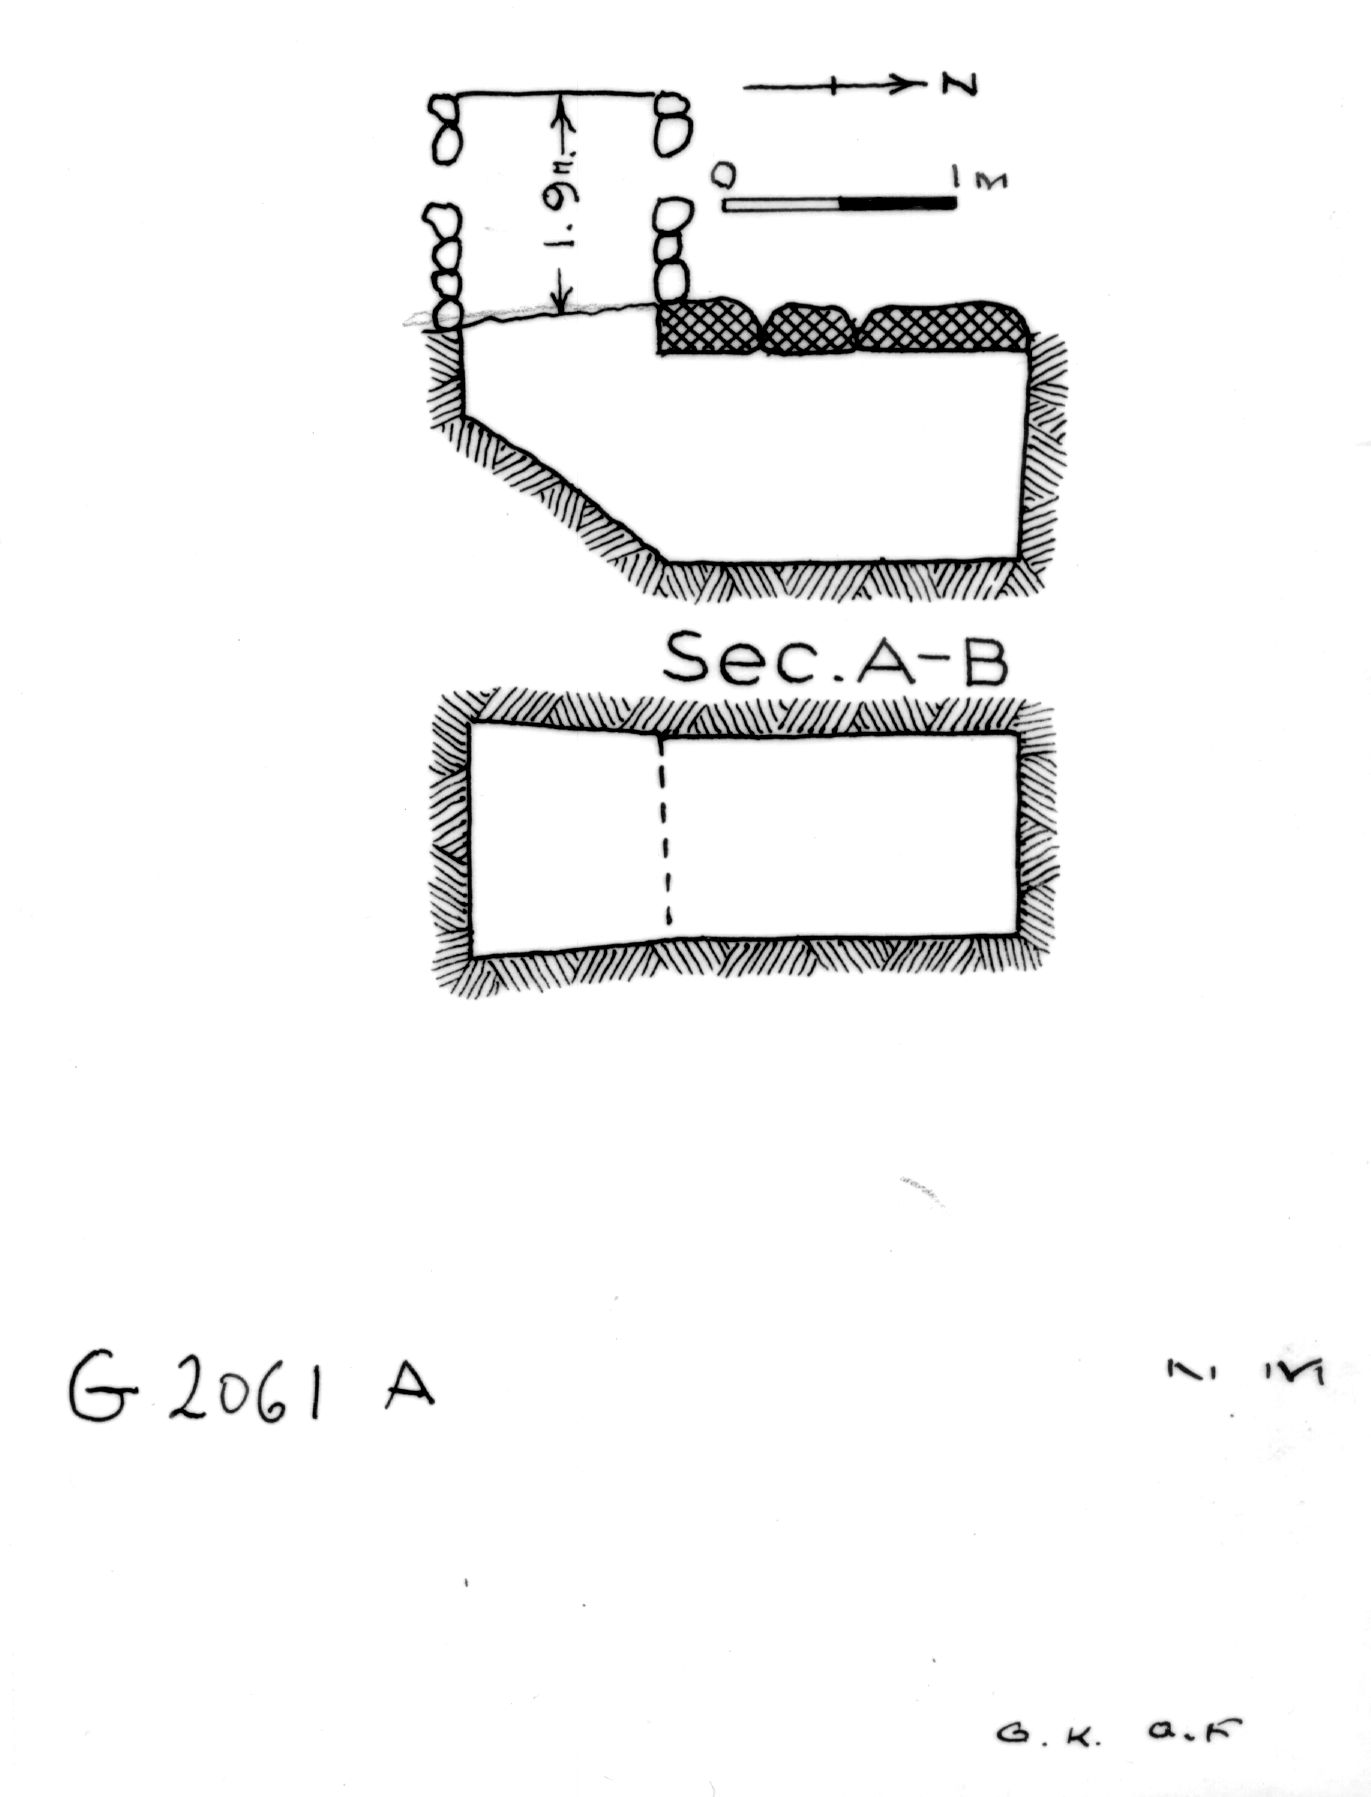 Maps and plans: G 2061, Shaft A